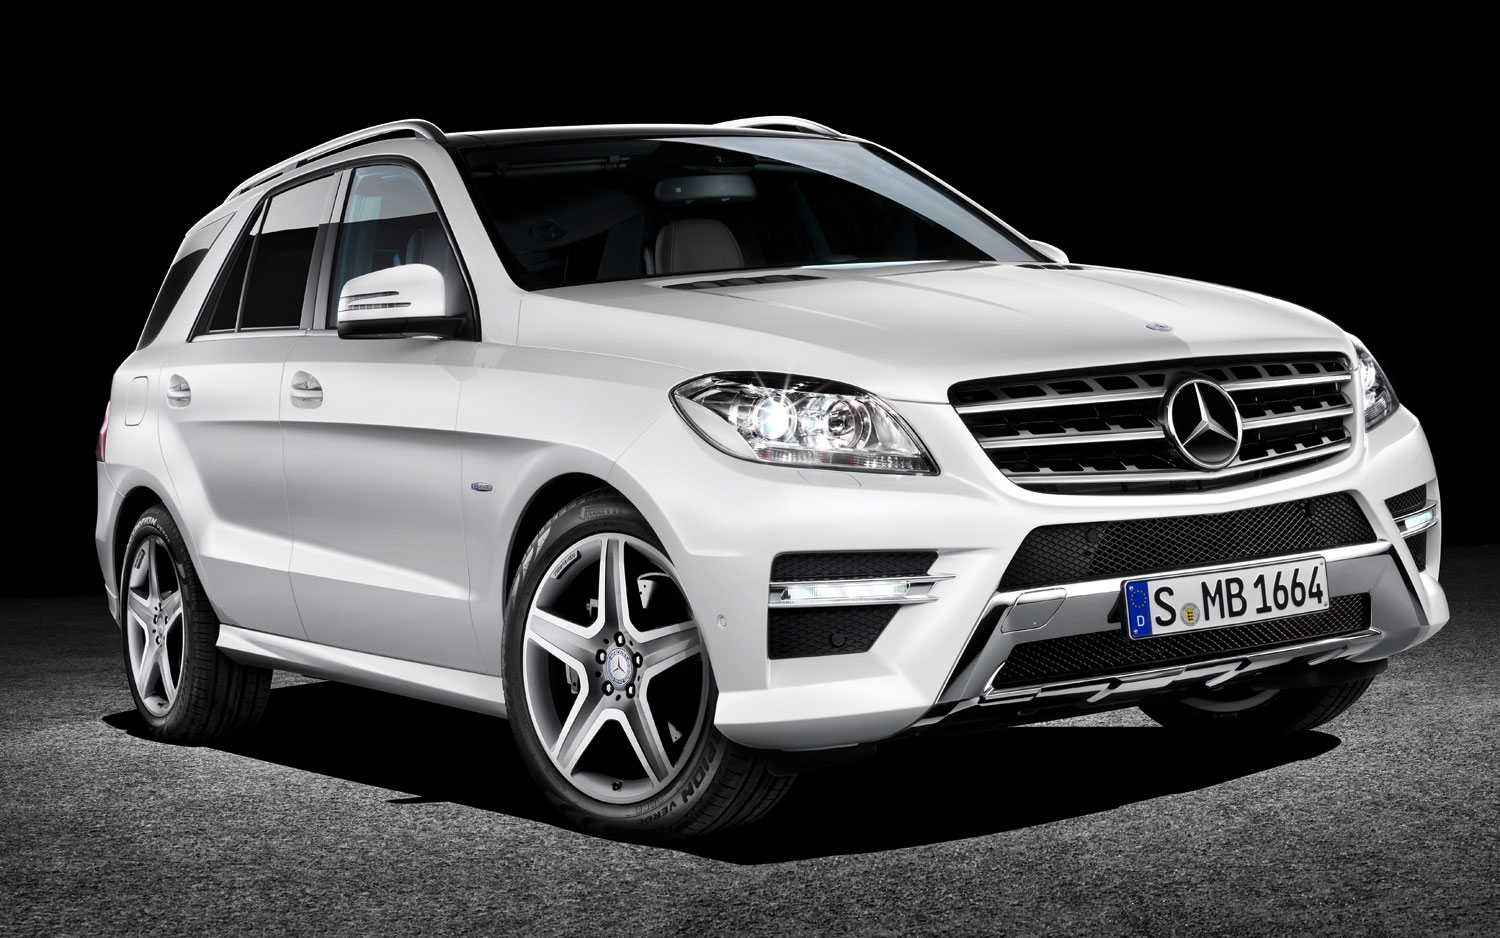 We Hear Mercedes Benz Developing Racy Gls Suv To Fight Bmw X6